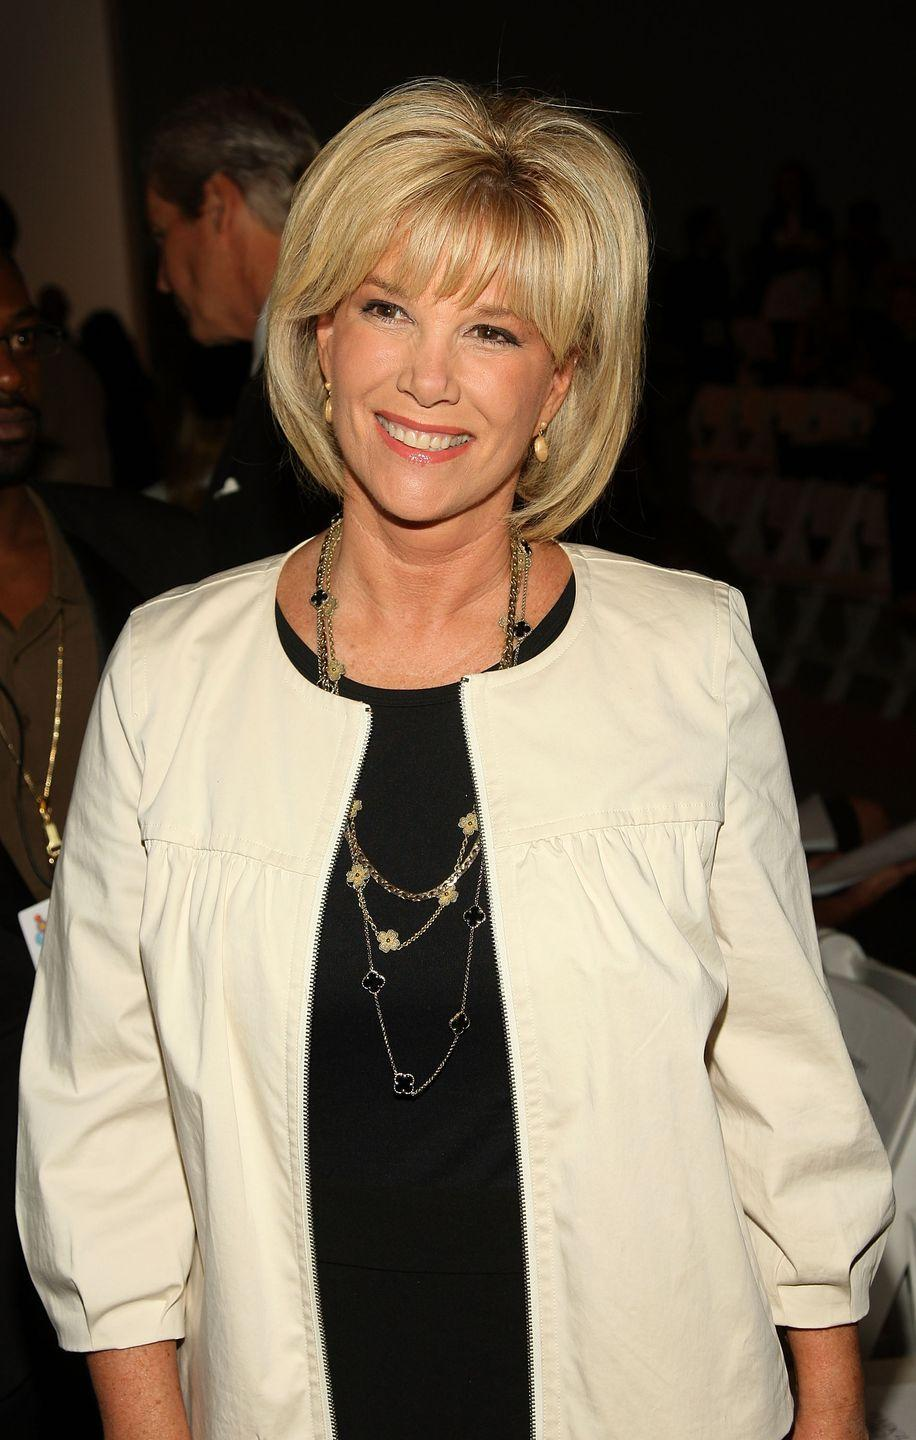 """<p>Journalist, author, and TV host Joan Lunden was diagnosed with cancer in June 2014 and almost immediately became a breast cancer advocate. She famously posed bald for the cover of <em>PEOPLE</em> and told <a href=""""https://www.today.com/health/joan-lunden-breast-cancer-t116904"""" rel=""""nofollow noopener"""" target=""""_blank"""" data-ylk=""""slk:Today"""" class=""""link rapid-noclick-resp""""><em>Today</em></a>:"""" I posed bald for the cover of <em>PEOPLE</em> because I know there are women out there who will actually say no to chemo because they're so worried about losing their hair. That astonishes me because what's the alternative?""""<br></p>"""